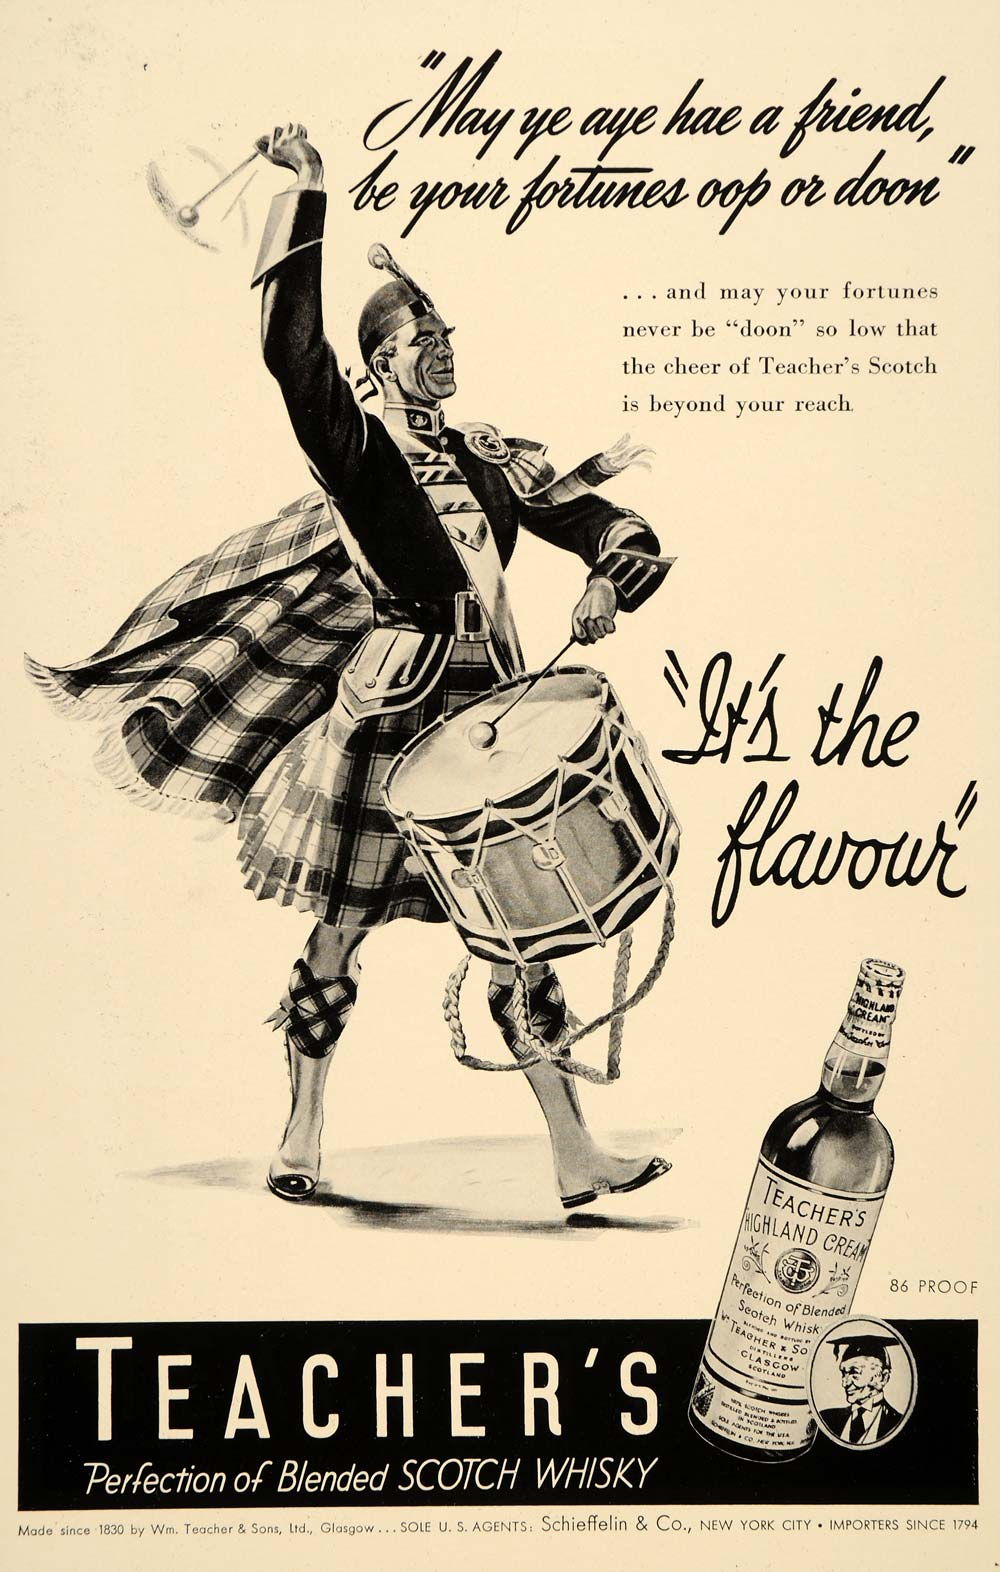 1941 Ad Teacher's Highland Cream Whisky Kilt Drum March - ORIGINAL MIX9